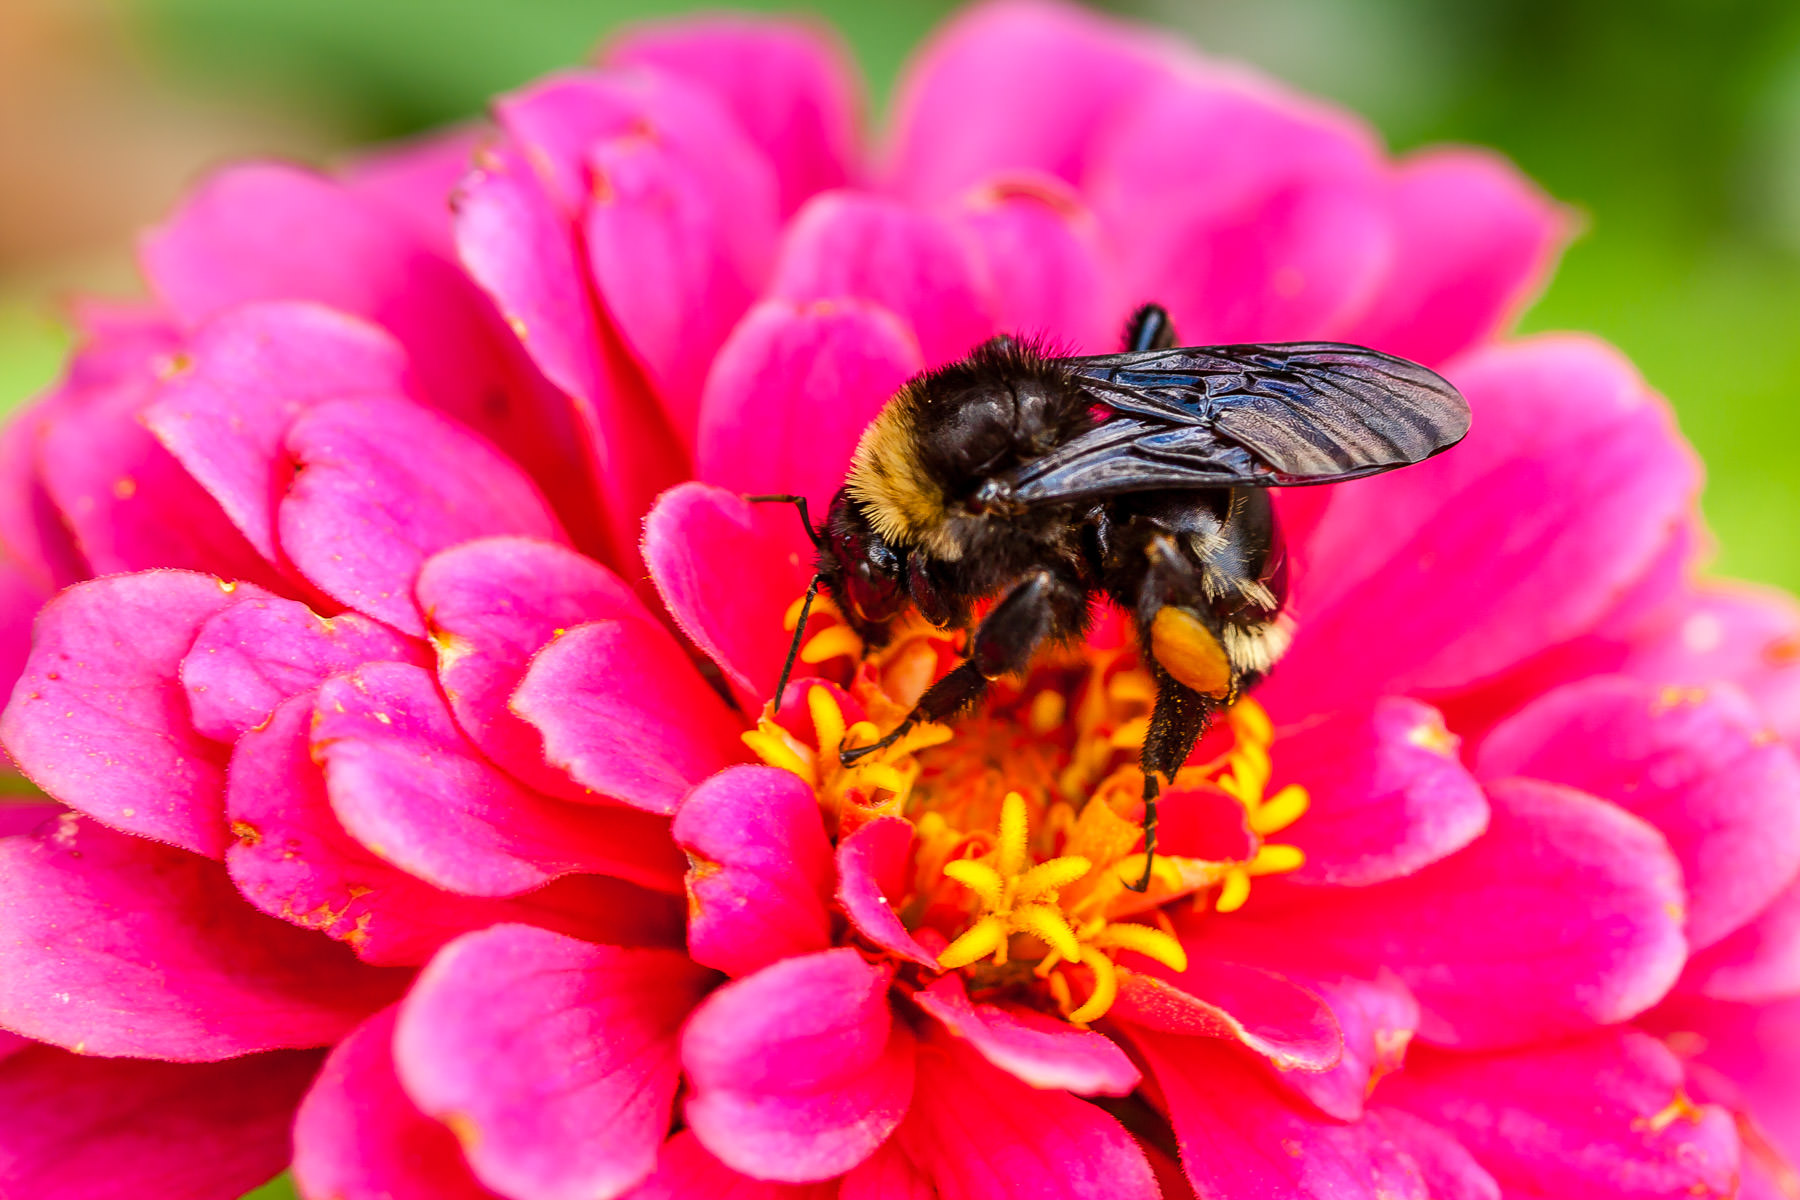 A bee collects pollen from a flower in College Station, Texas.